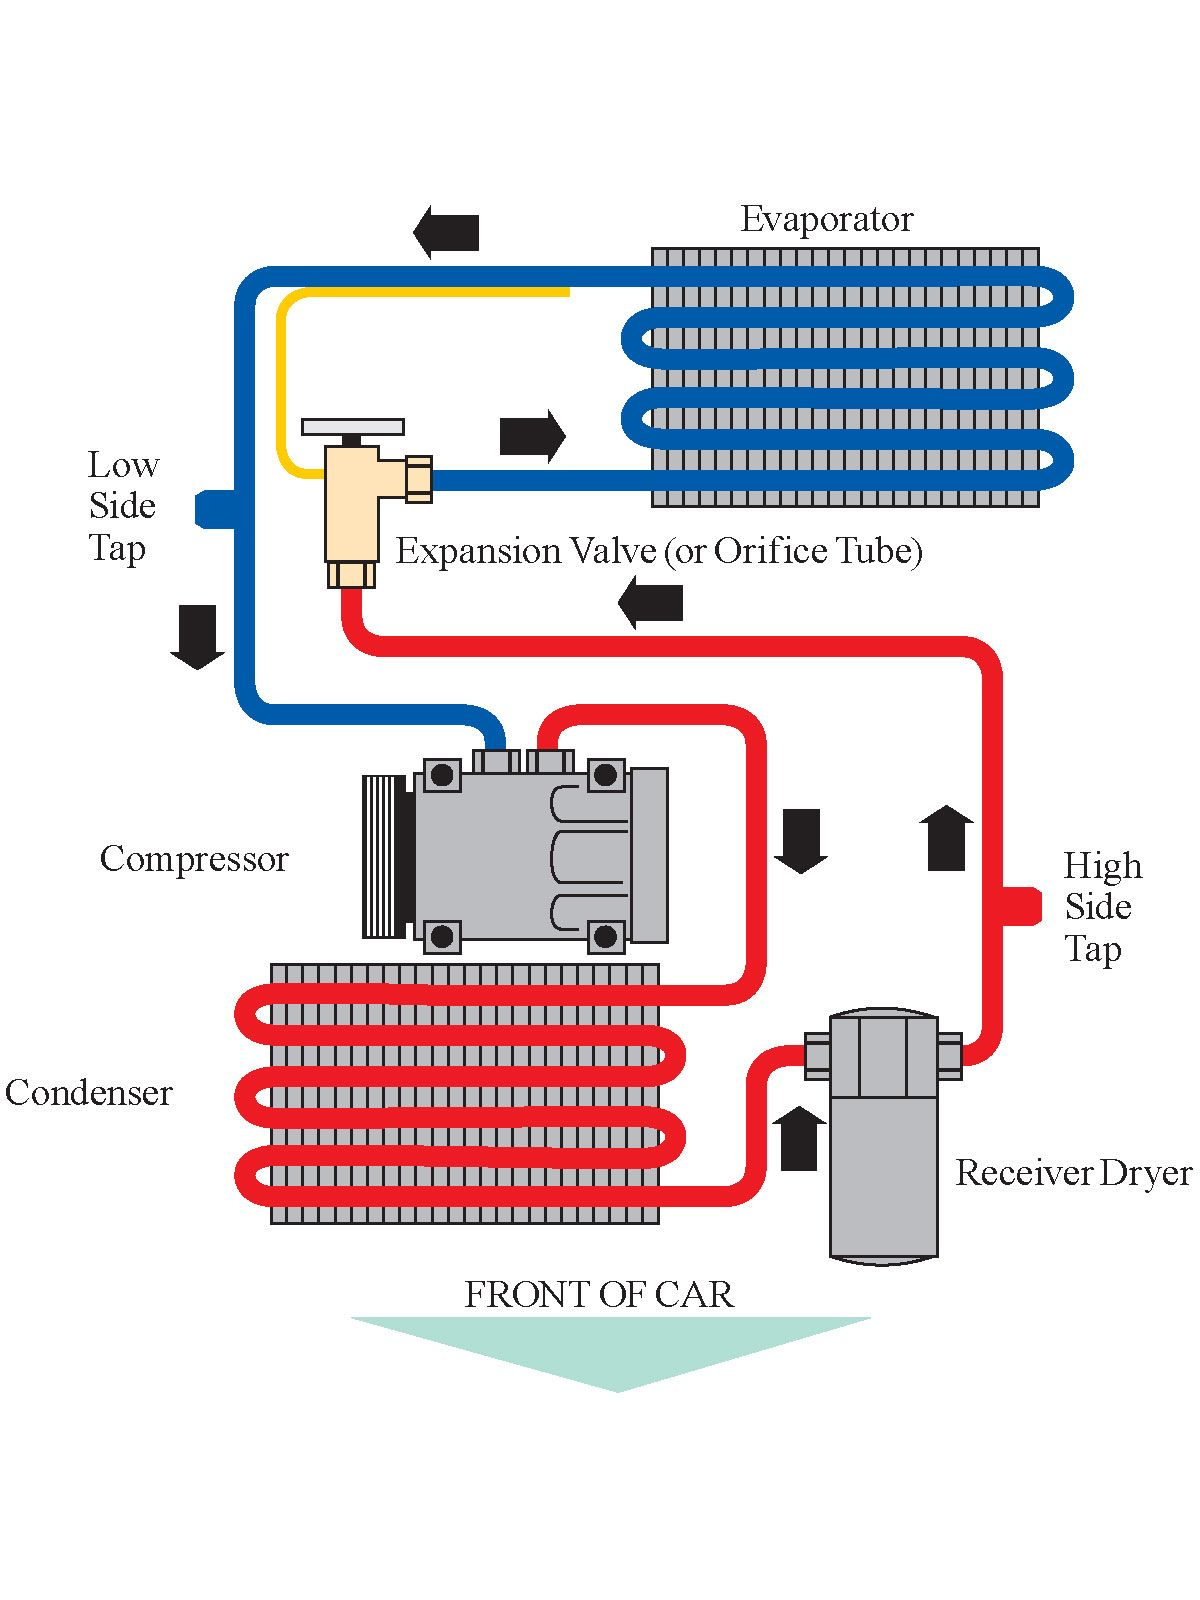 Car Computer Network Diagram Rj45 Cat6 Wiring A C System